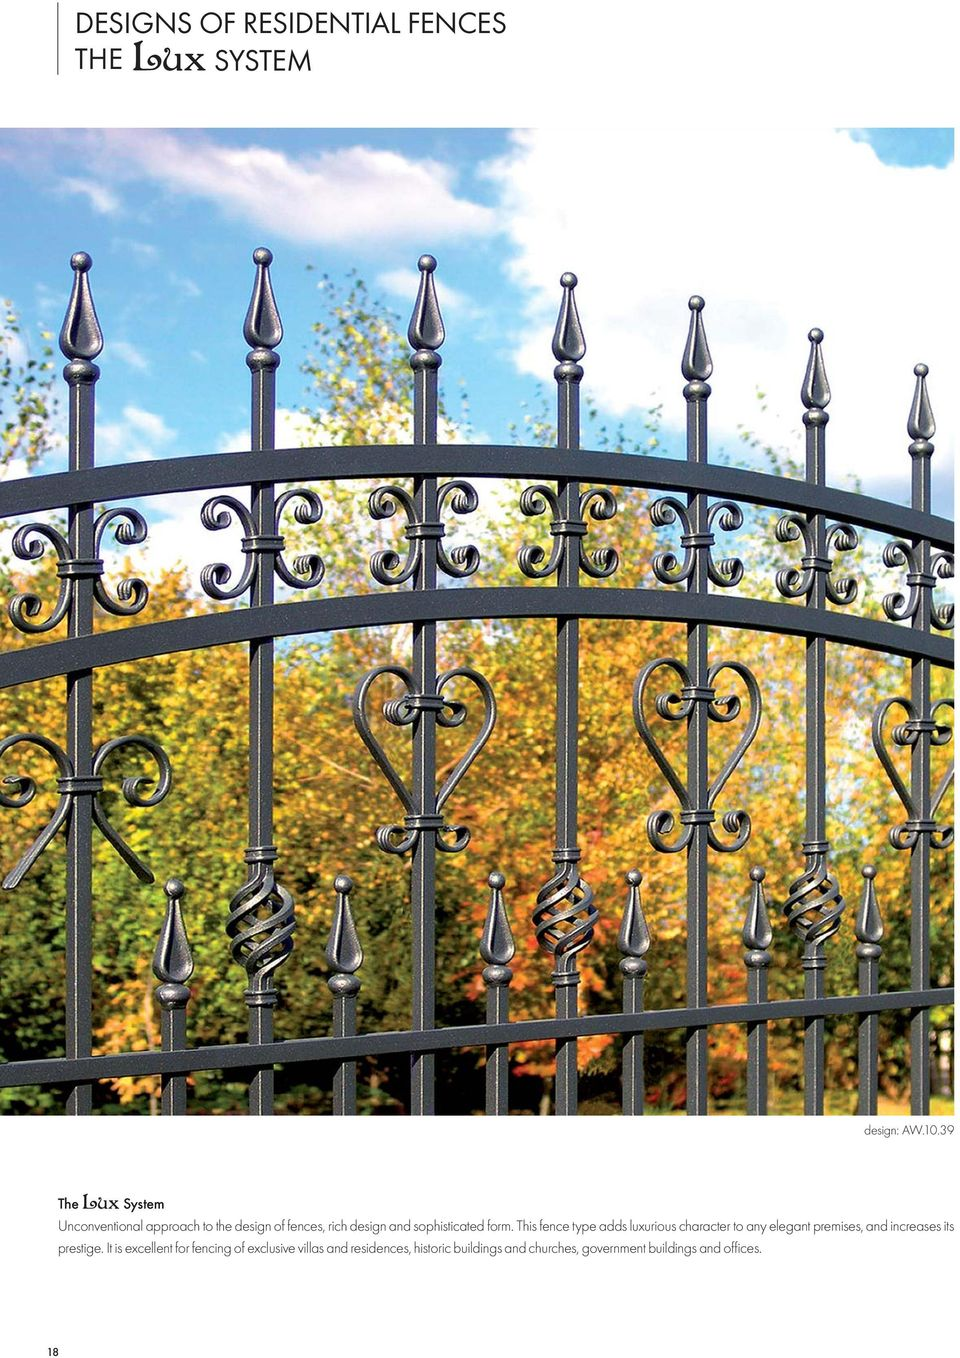 This fence type adds luxurious character to any elegant premises, and increases its